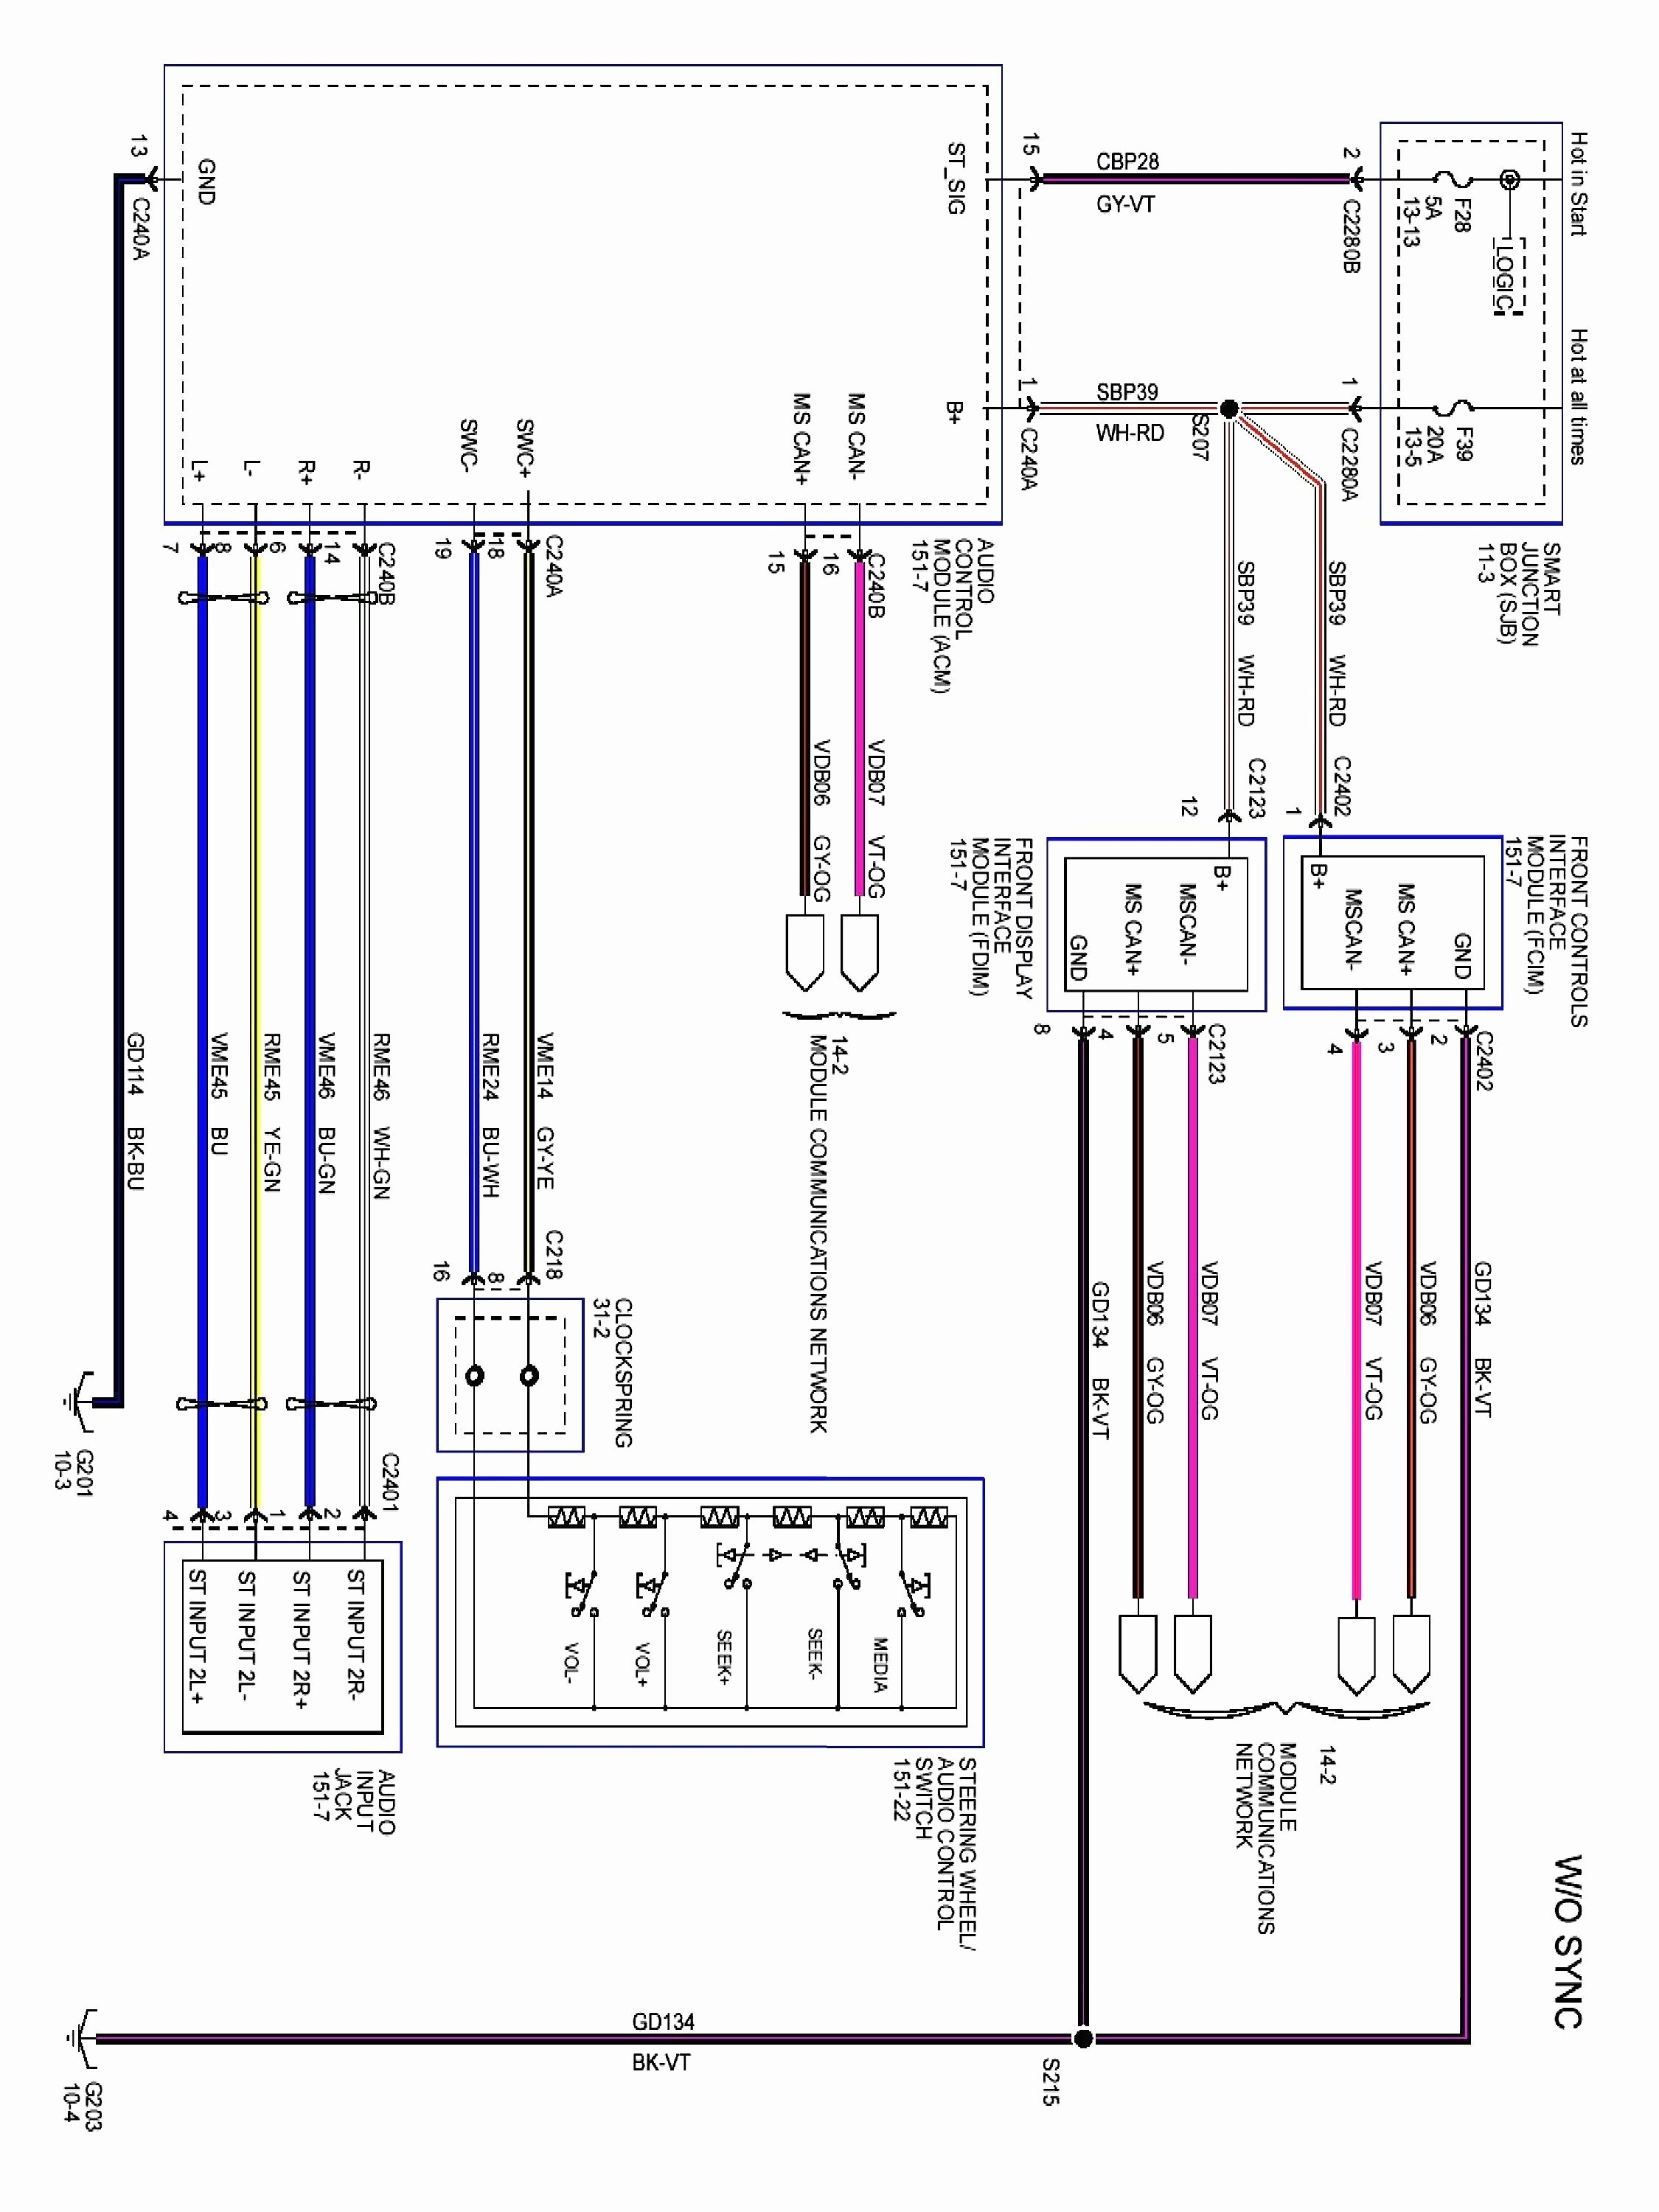 Electrical Diagrams for Cars Car Amp Wiring Diagram Of Electrical Diagrams for Cars